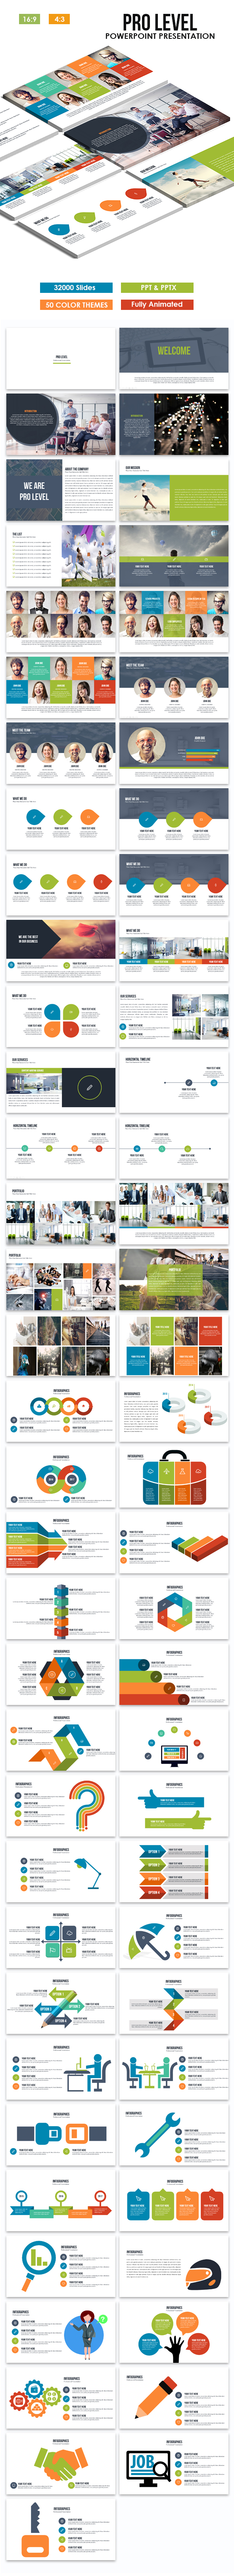 Pro Level Powerpoint Template - Business PowerPoint Templates